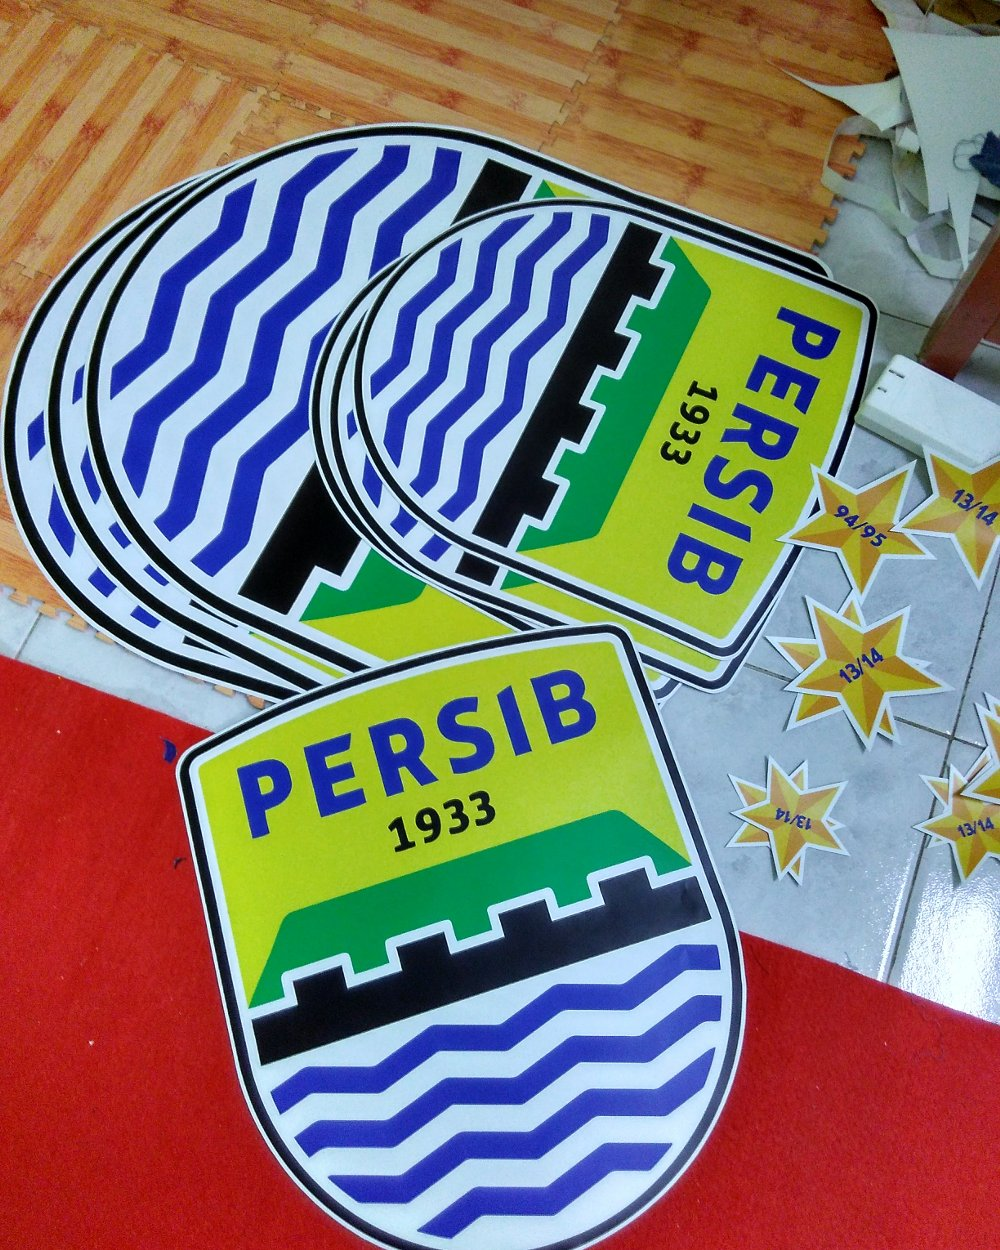 Wallpaper Logo Persib Persib HD Wallpaper